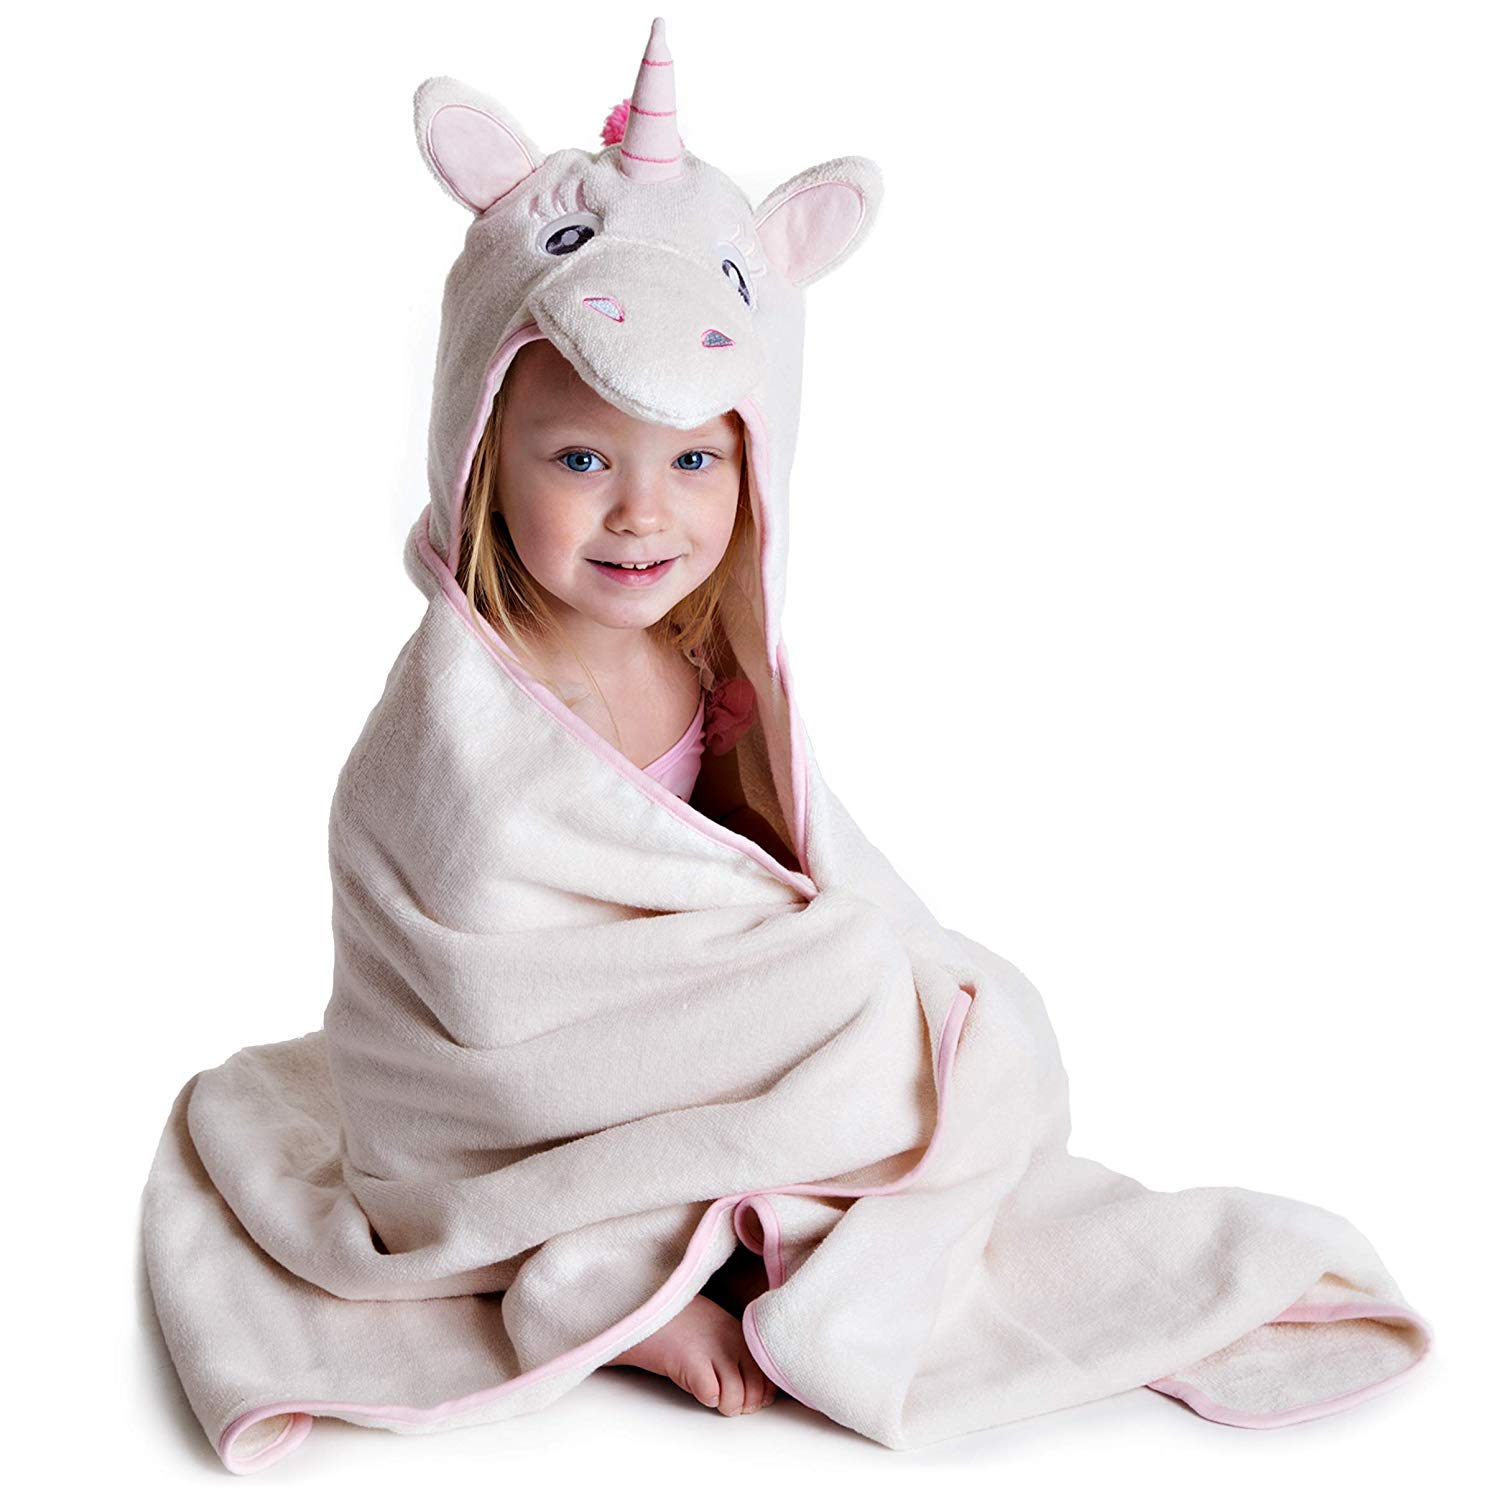 Little Tinkers World Premium Hooded Towel for Kids | Unicorn Design | Ultra Soft and Extra Large | 100% Cotton Bath Towel with Hood for Girls by Little Tinkers World